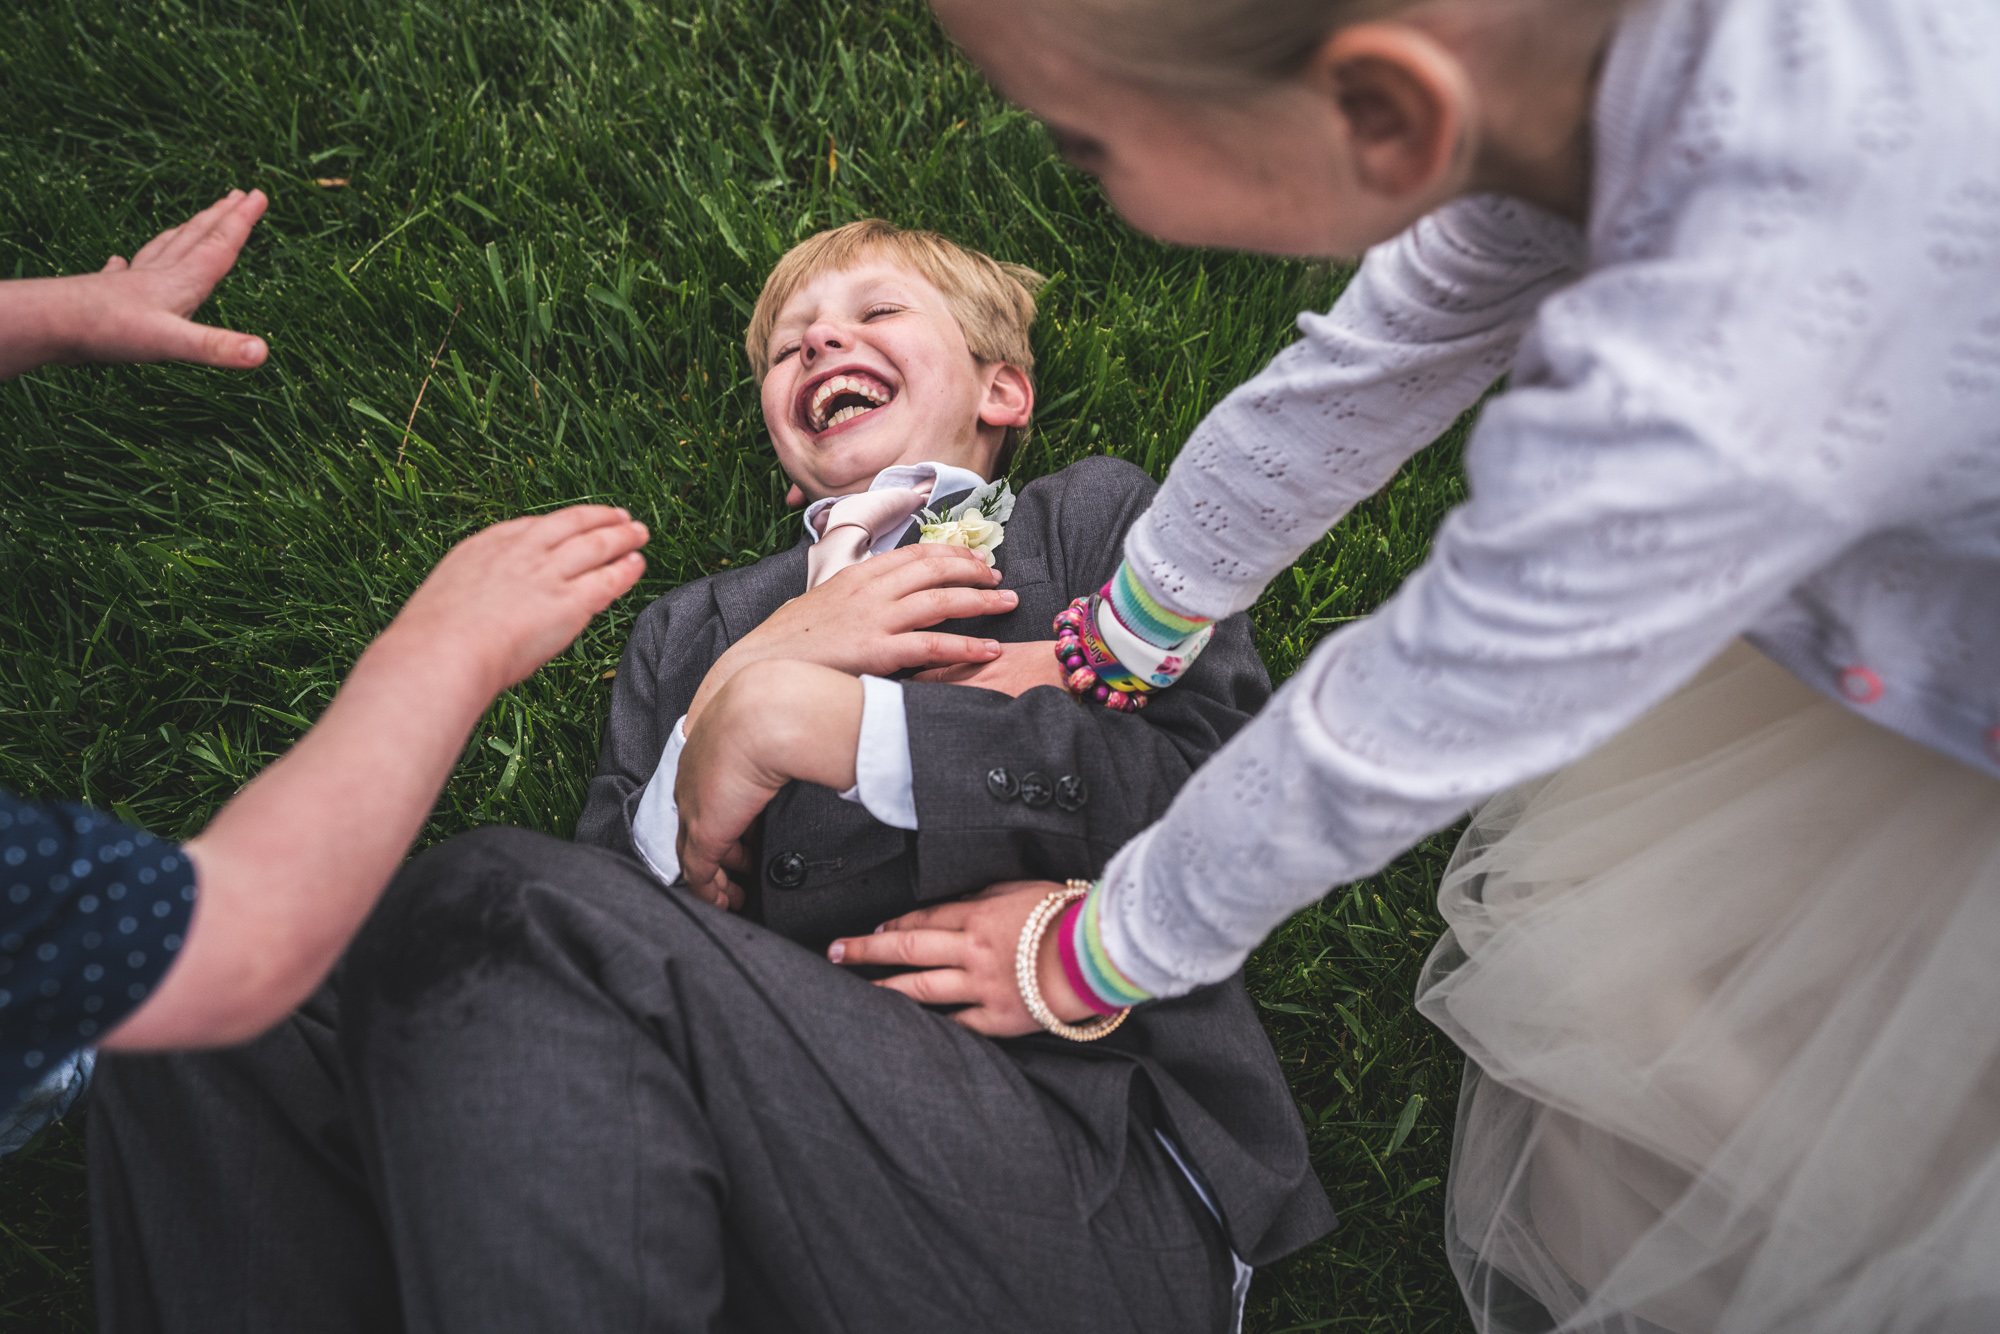 Color photo of a little boy wearing a grey suit and light pink tie lying on the grass laughing as two of his friends - one a little girl in a puffy white dress and another a little boy in a blue shirt - tickle him.